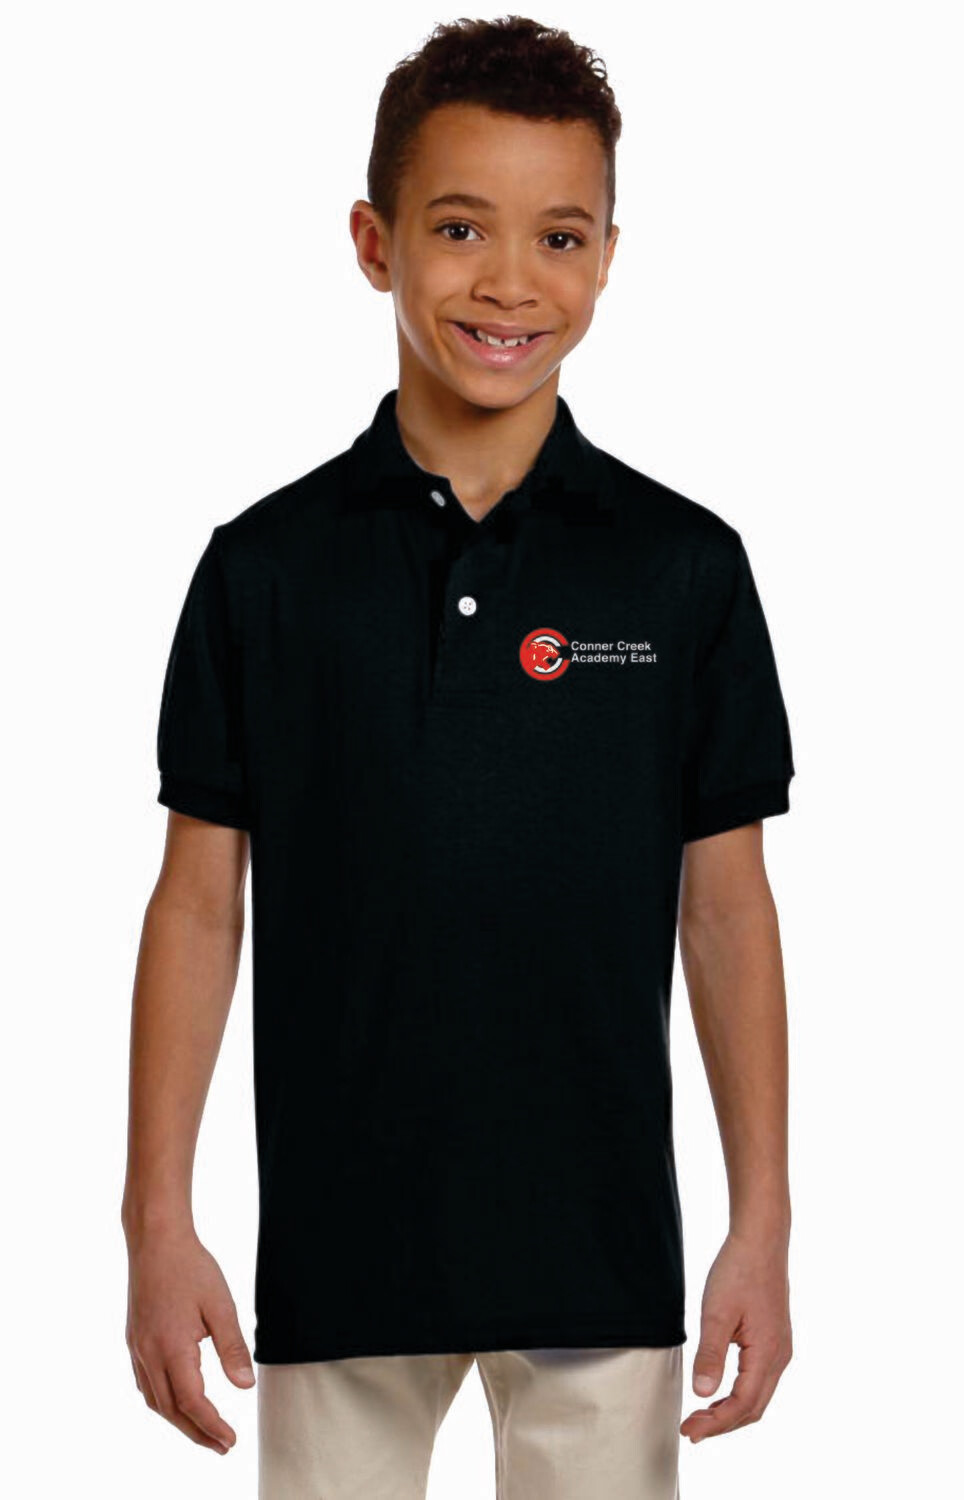 Conner Creek Academy East Short Sleeve Polo